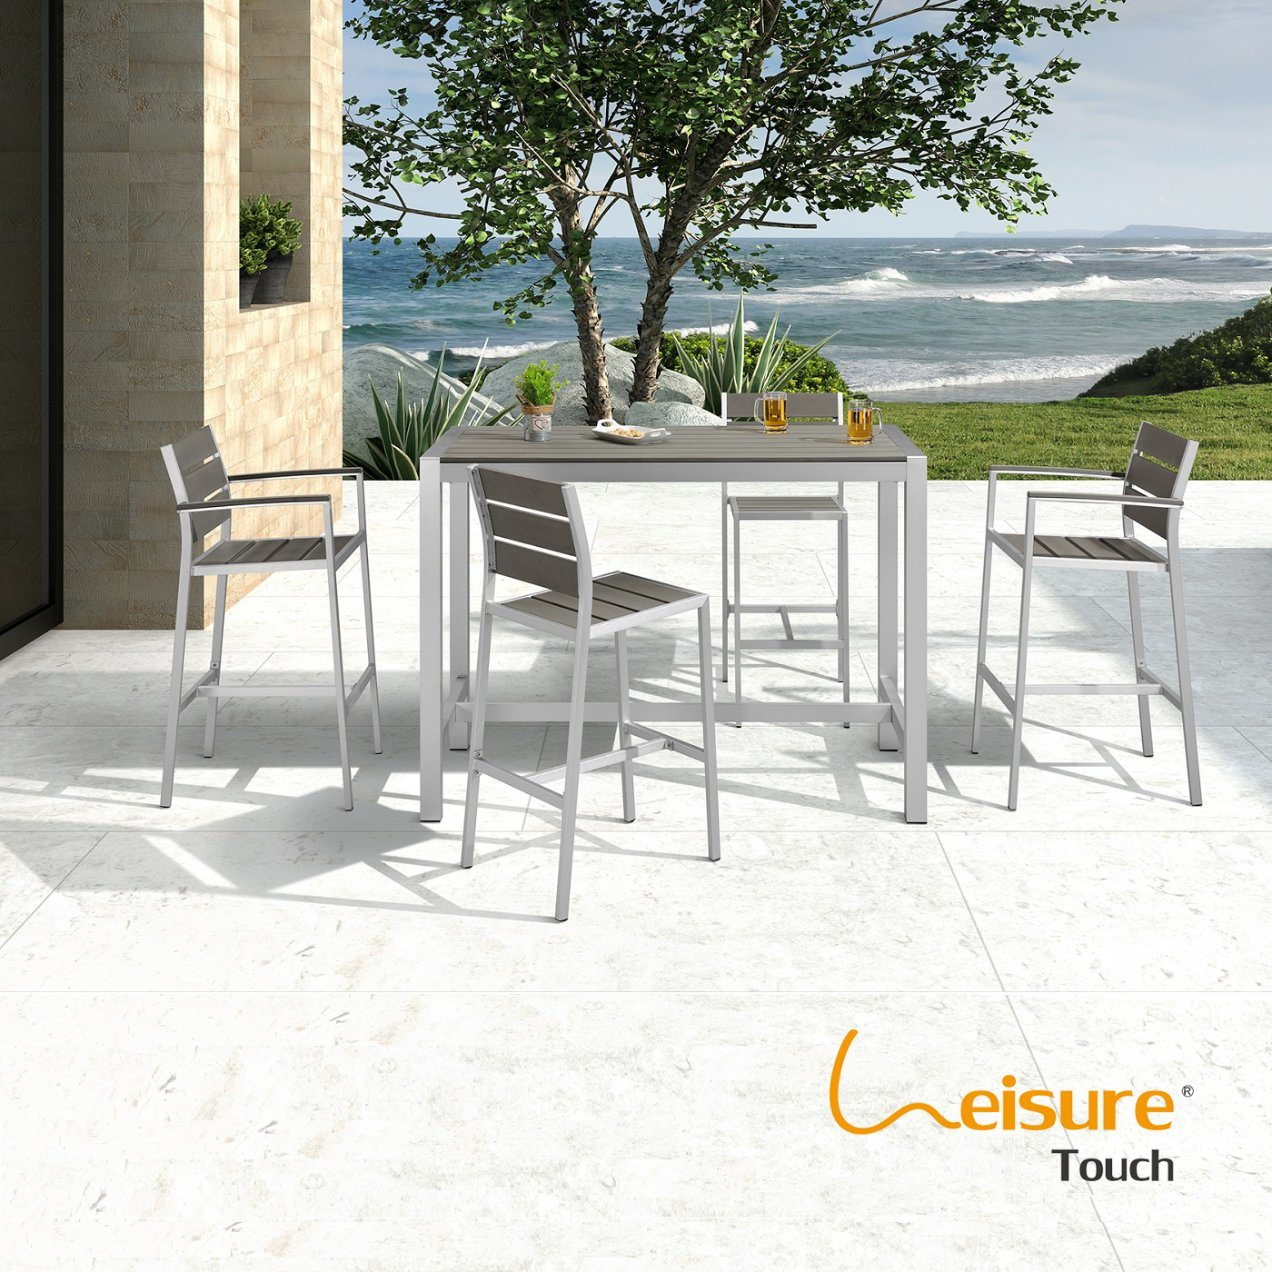 Outdoor Bistro Table And Chair Leisure